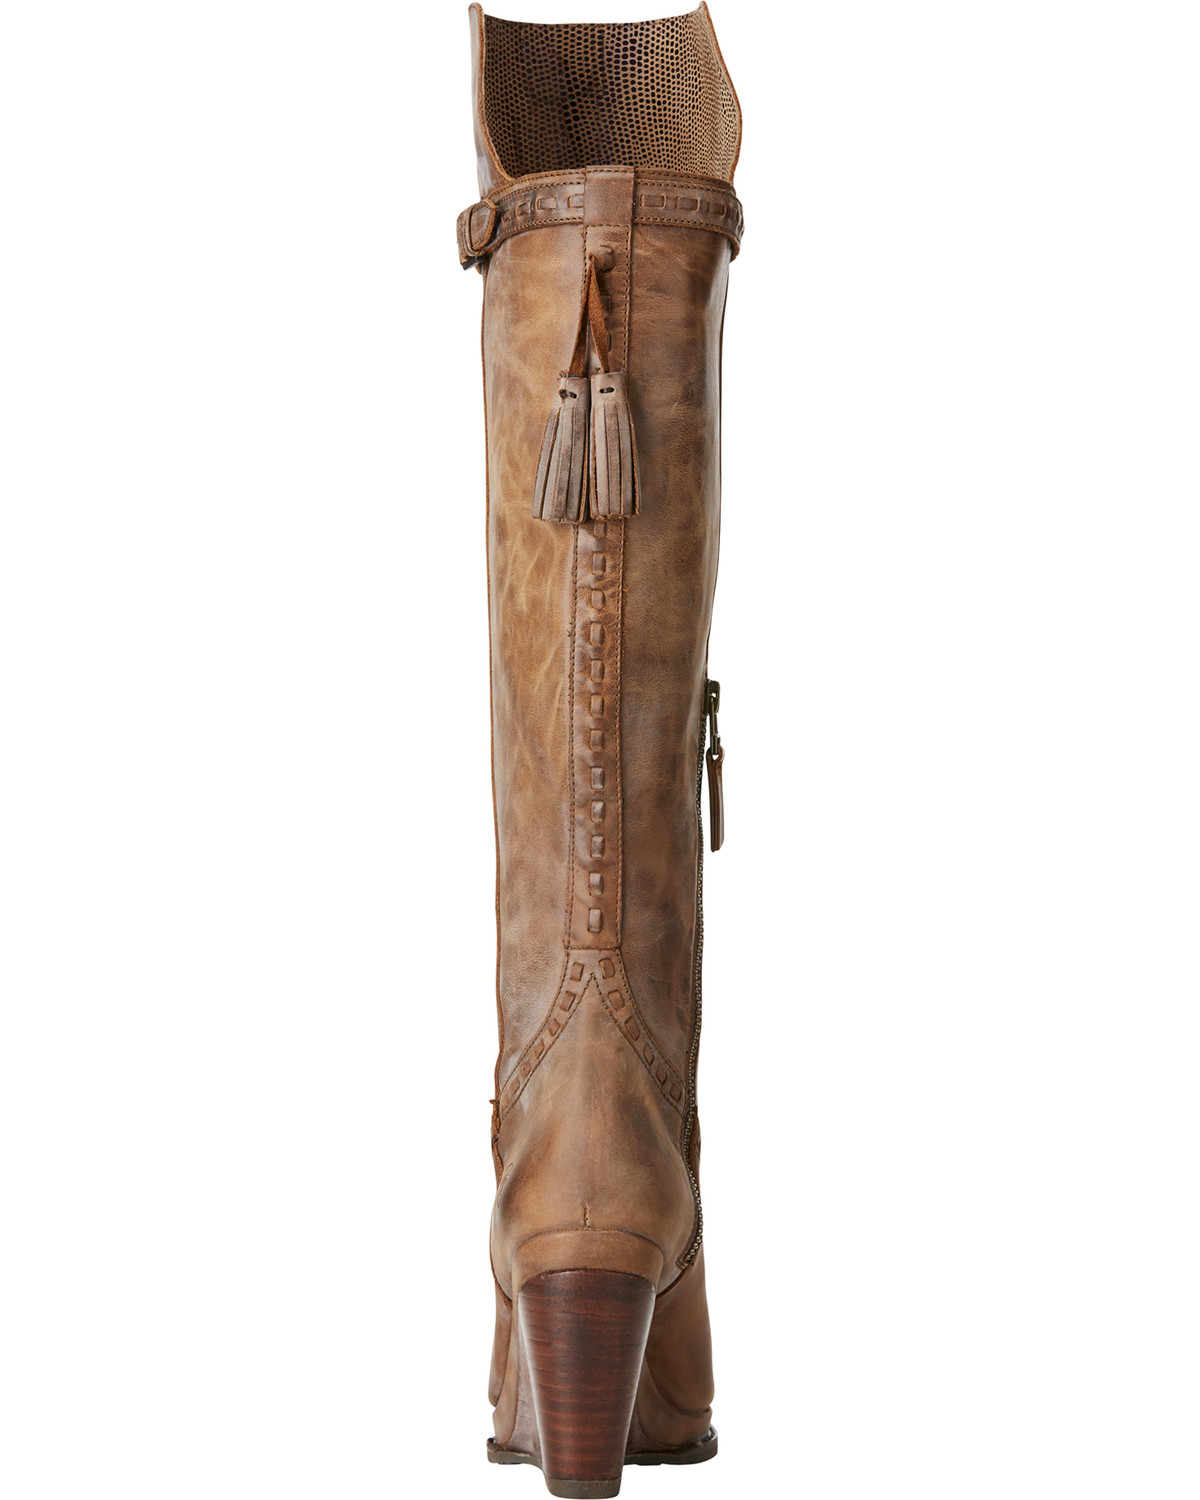 1c0762f9de17 Ariat Women s Knoxville Tan Tall Wedge Boots - Round Toe